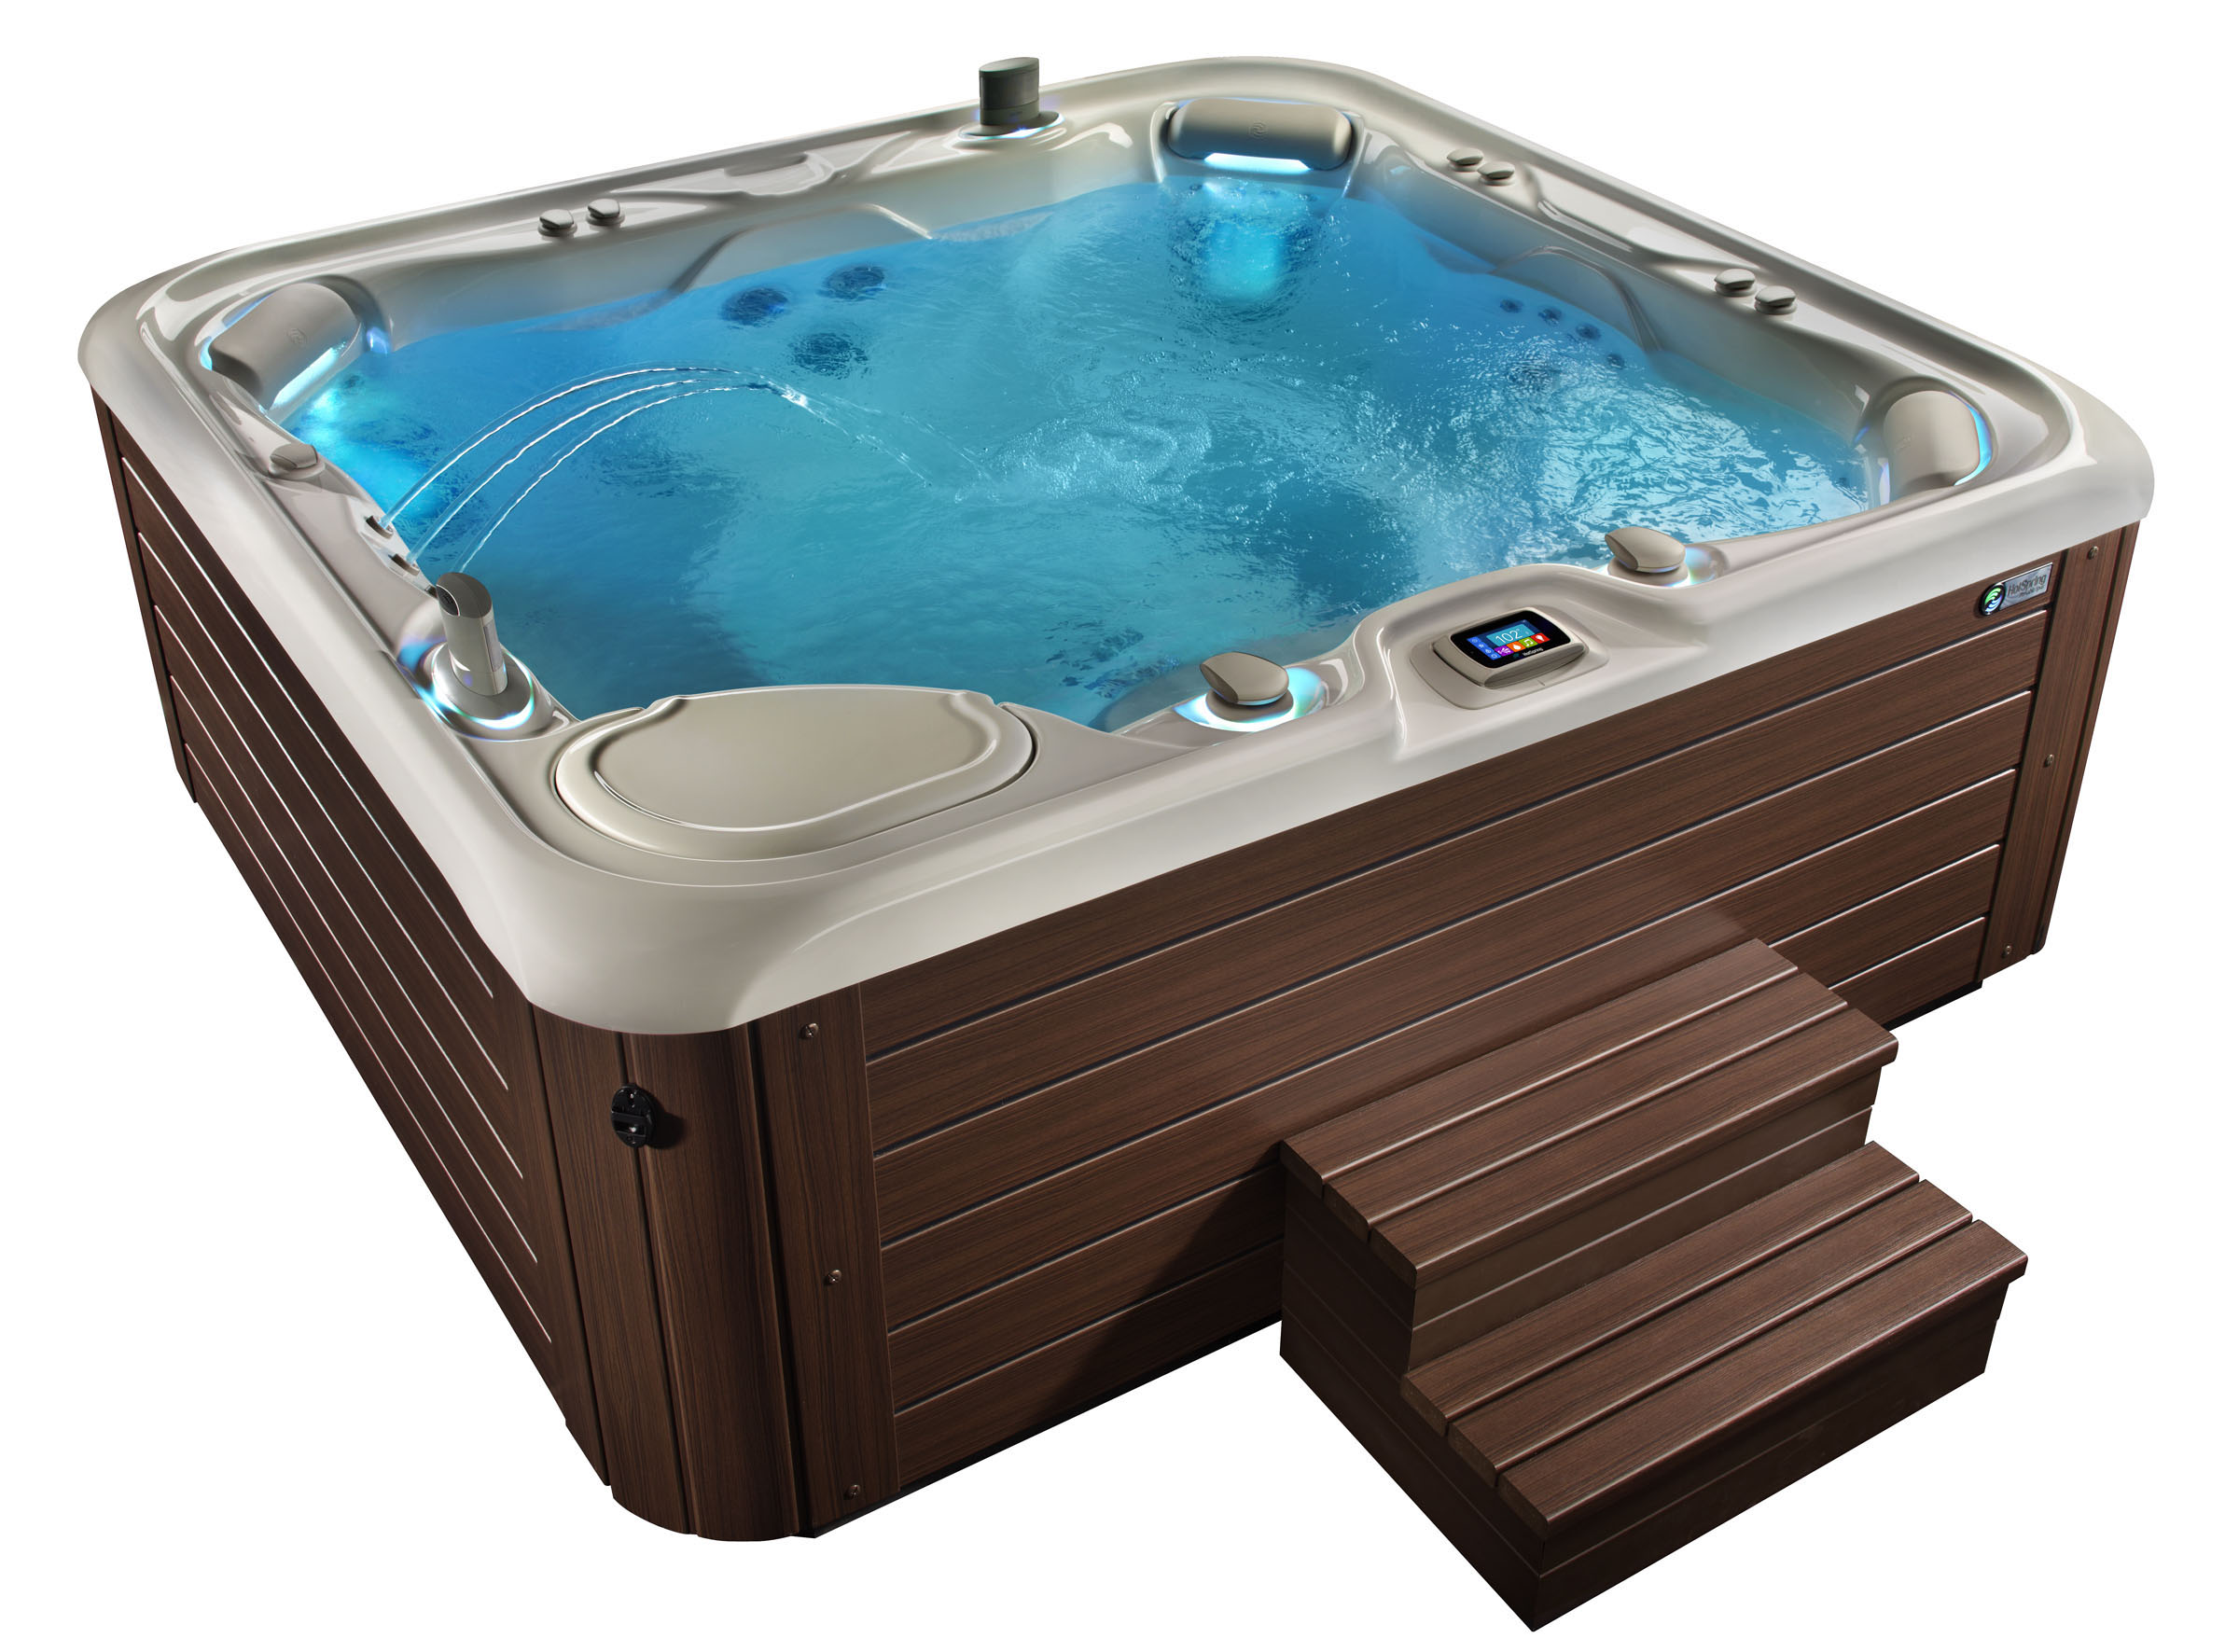 stonehenge plastic water yard relaxing crown your oasis spas products enhanced back person patented a s spa comfort own tub maker hot odyssey main lounger enjoy with newly the dream in pools